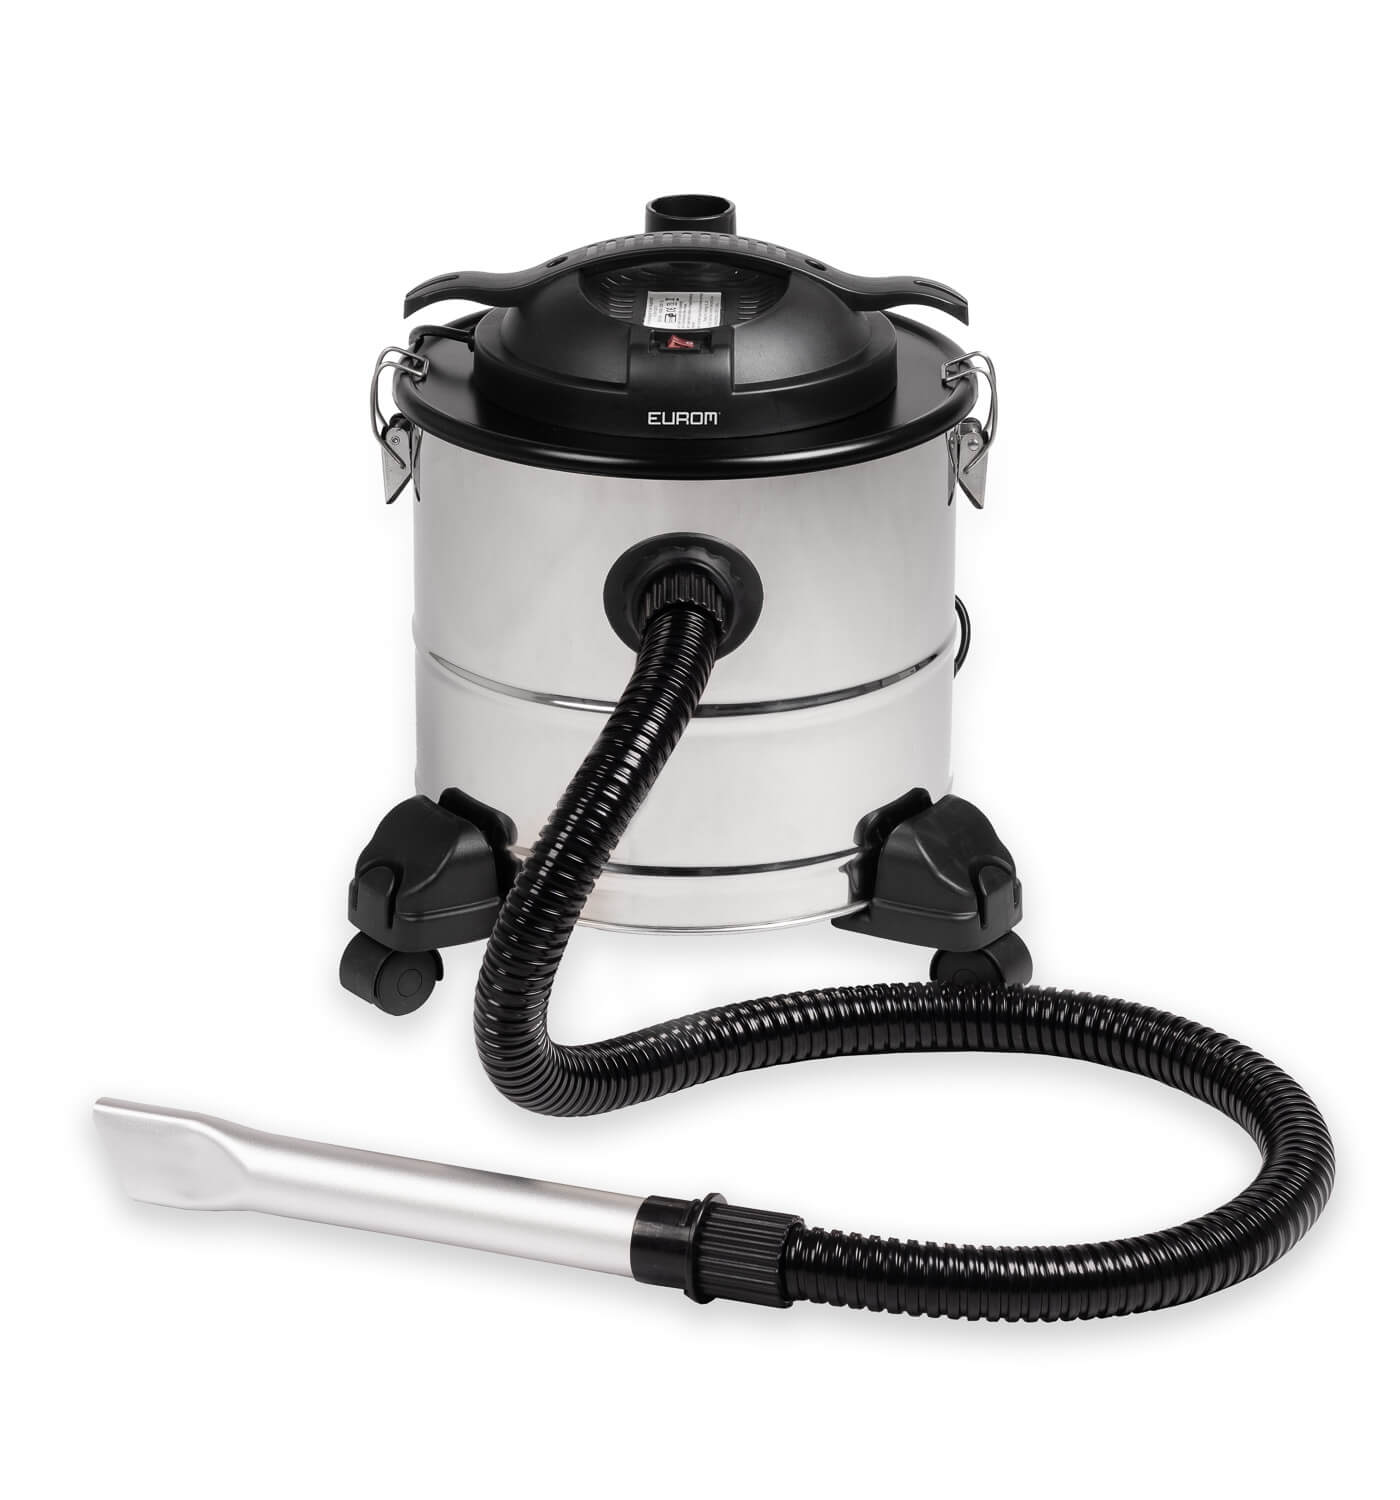 EUROM 161427 / Force 1218 Ash cleaner